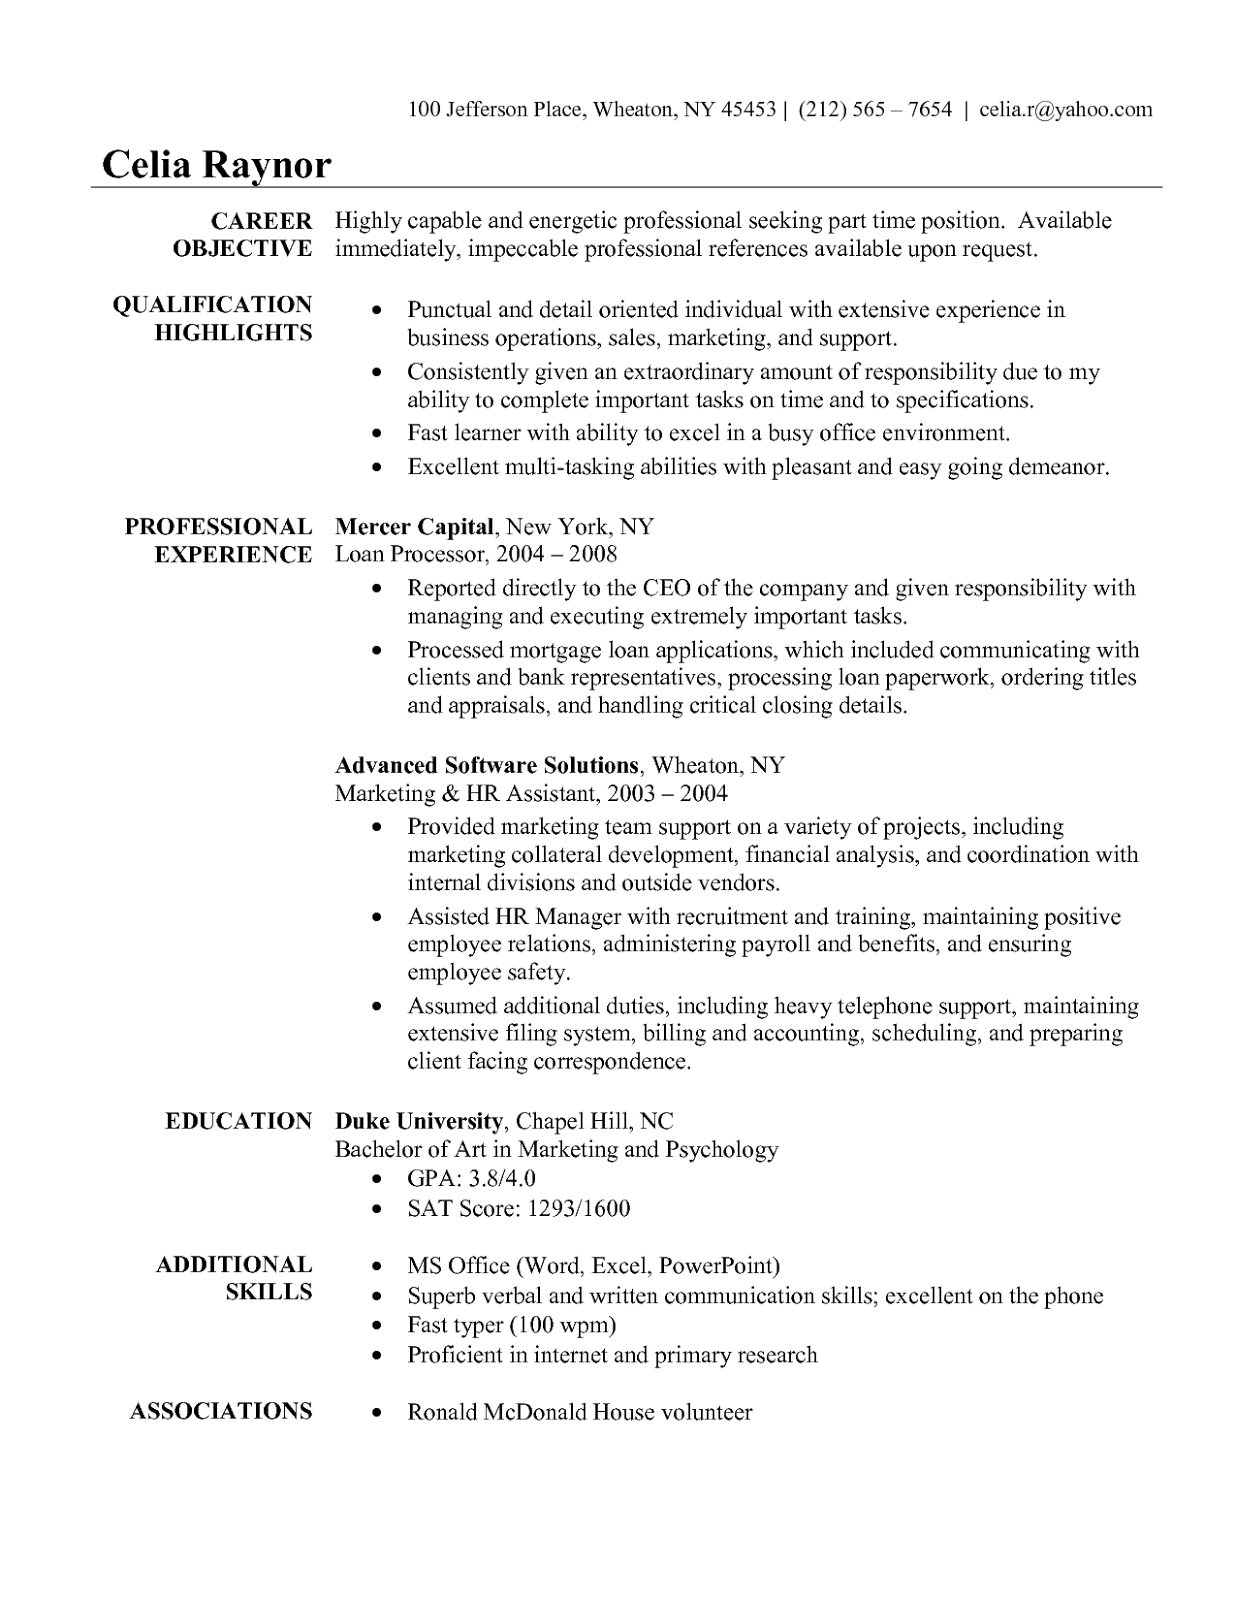 Administrative Assistant Resume Summary Sample Objective On Resume For Administrative Assistant